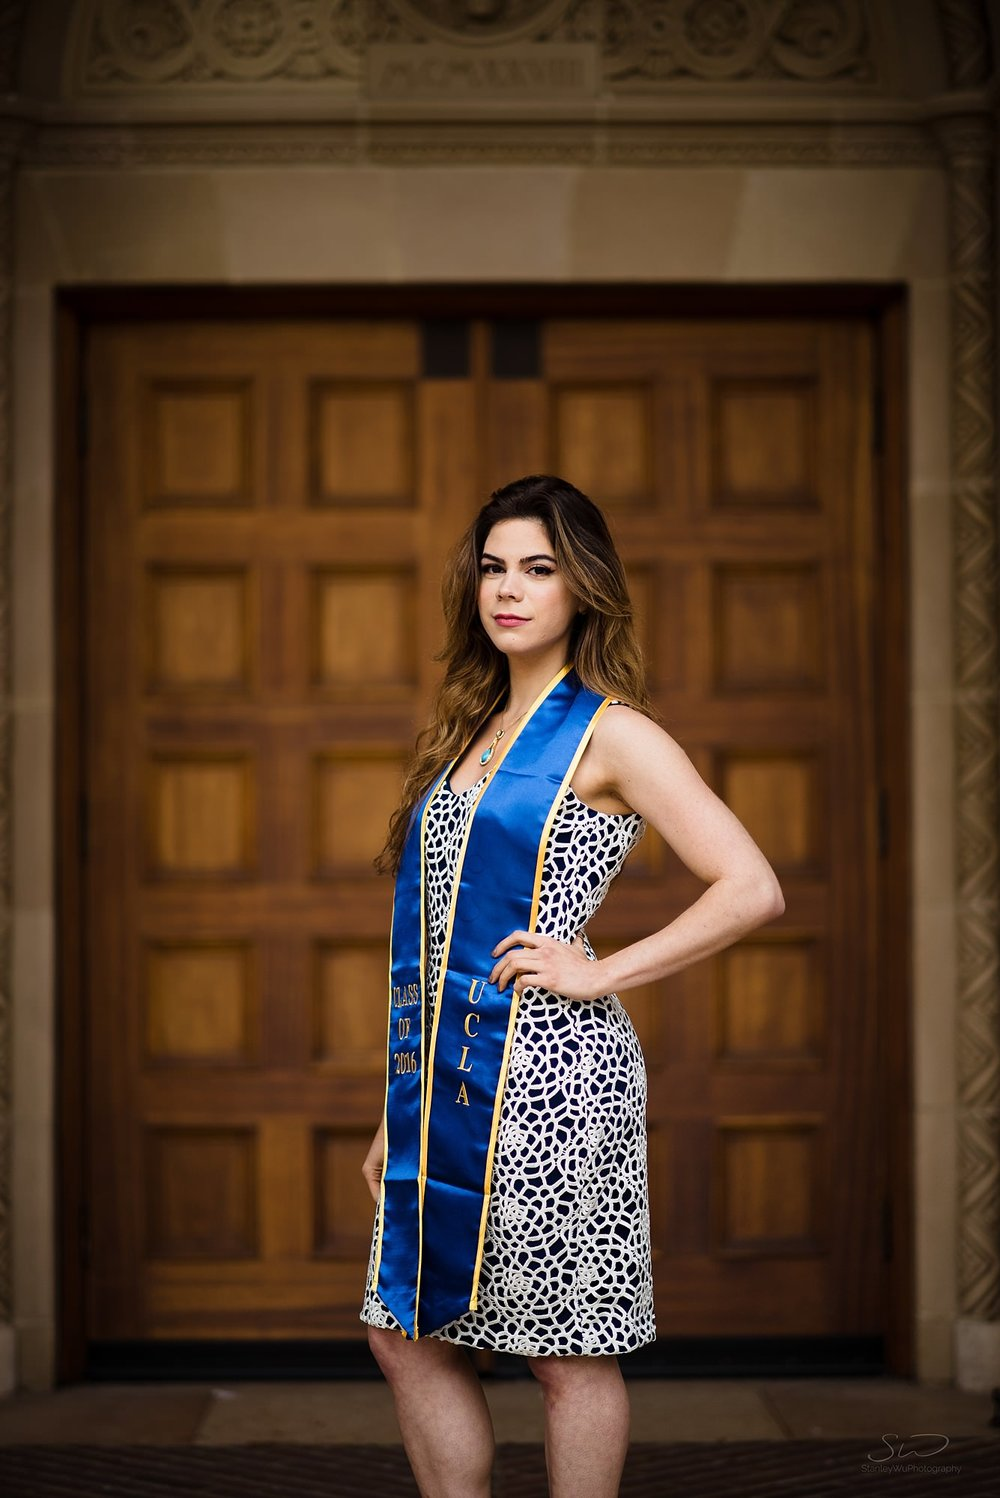 beautiful graduation senior portrait of a girl posing in front of wooden doors in royce at ucla in los angeles